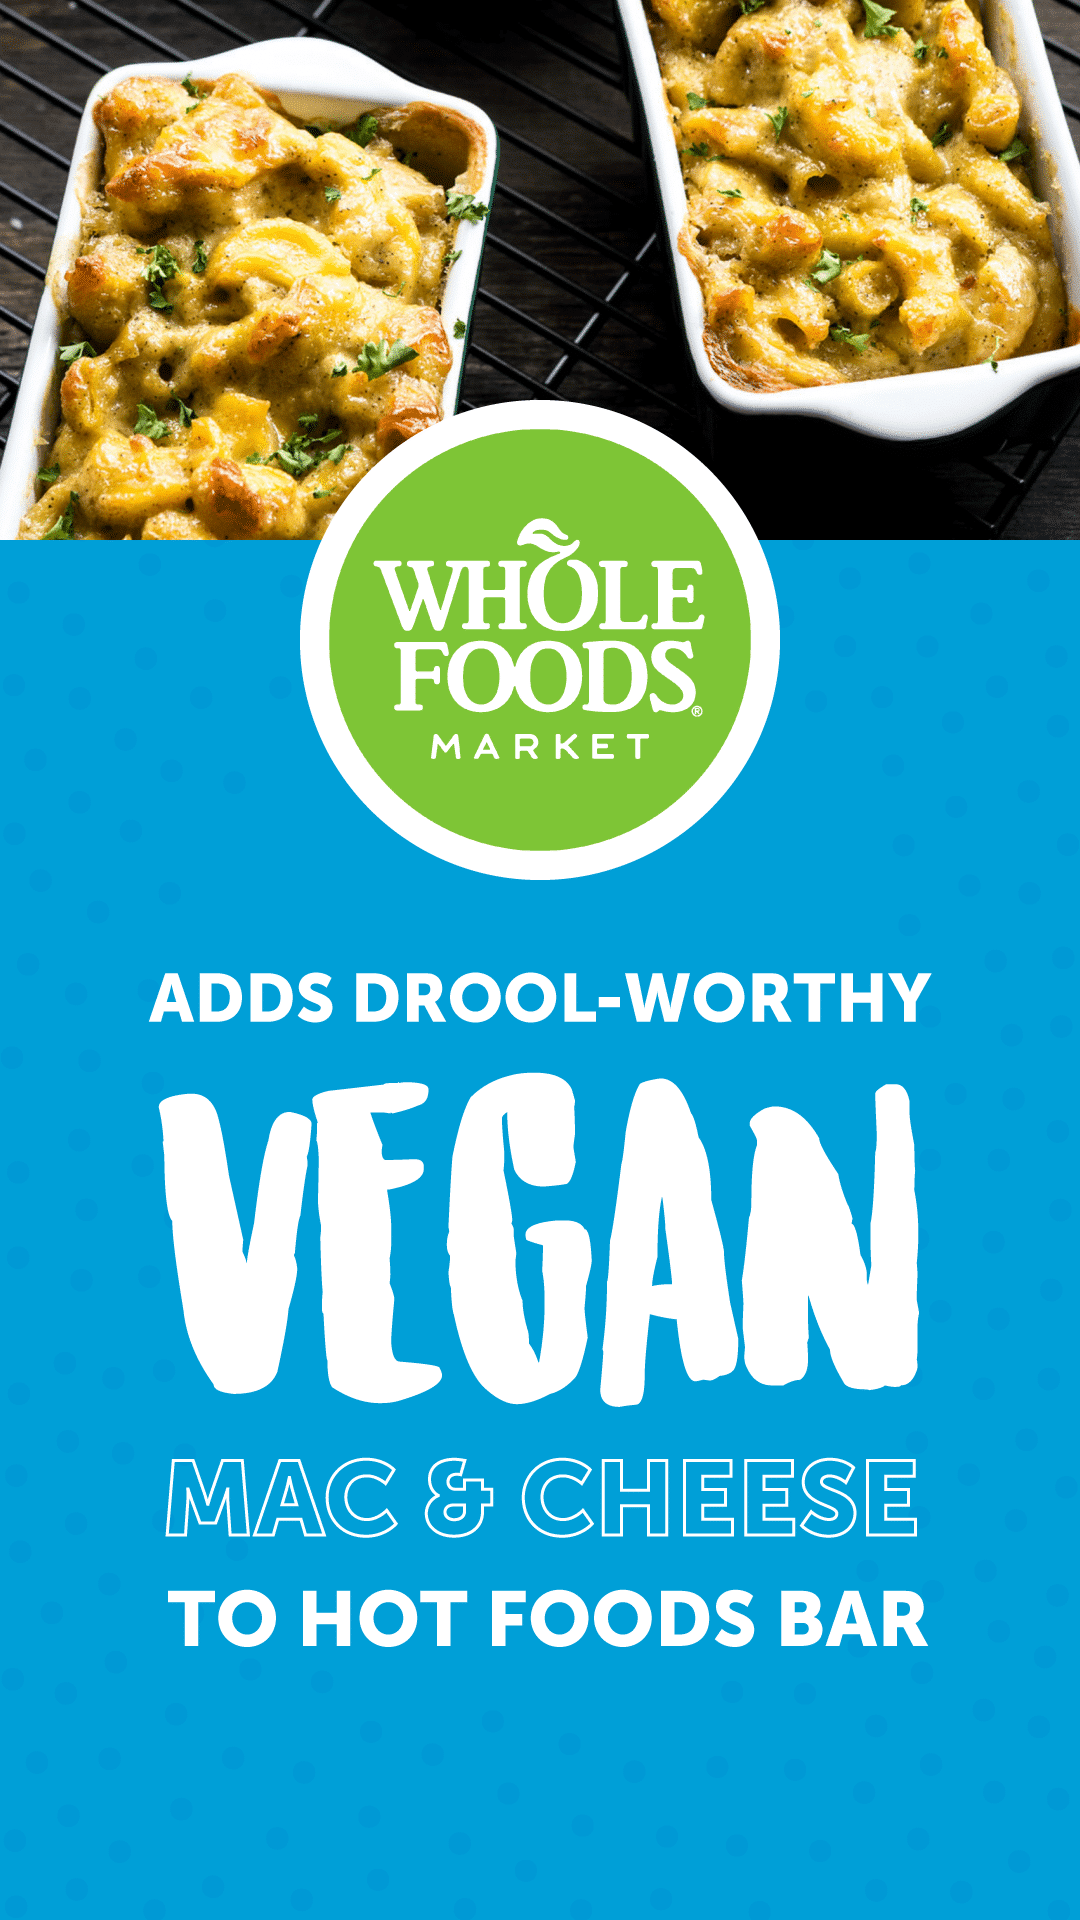 Whole Foods Adds Drool-Worthy Vegan Mac and Cheese to Hot Foods Bar